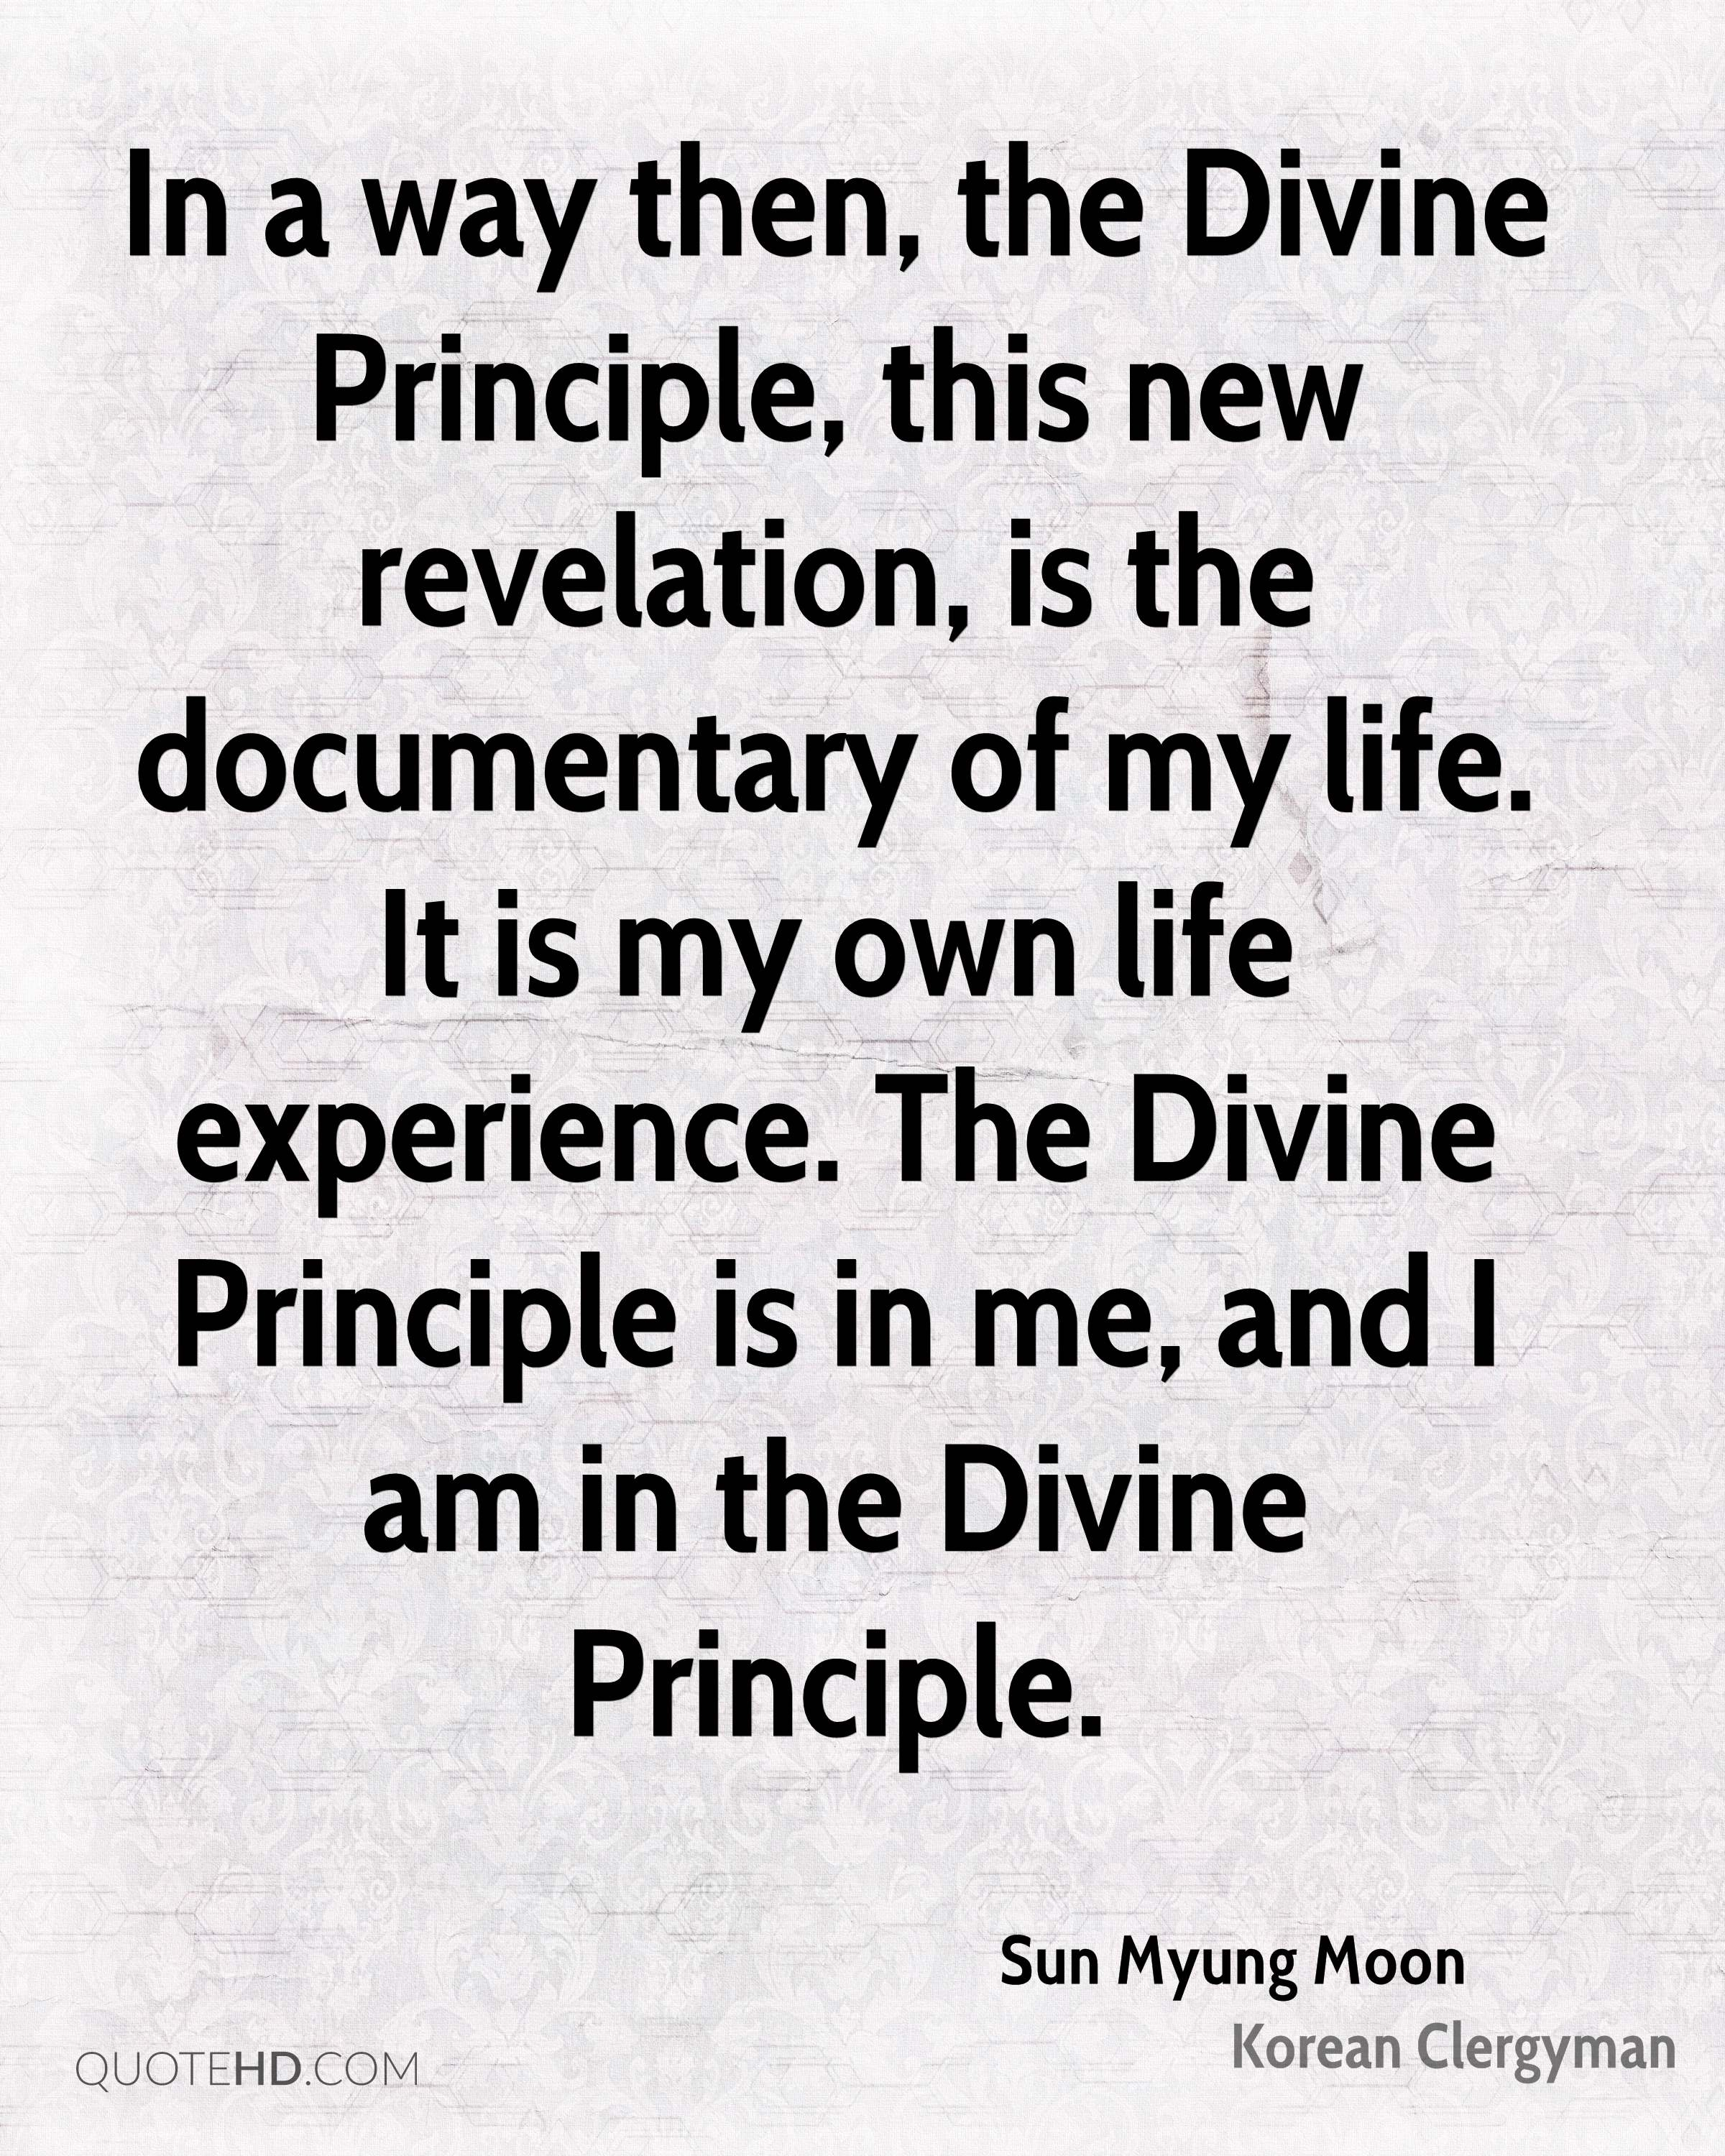 In a way then, the Divine Principle, this new revelation, is the documentary of my life. It is my own life experience. The Divine Principle is in me, and I am in the Divine Principle.